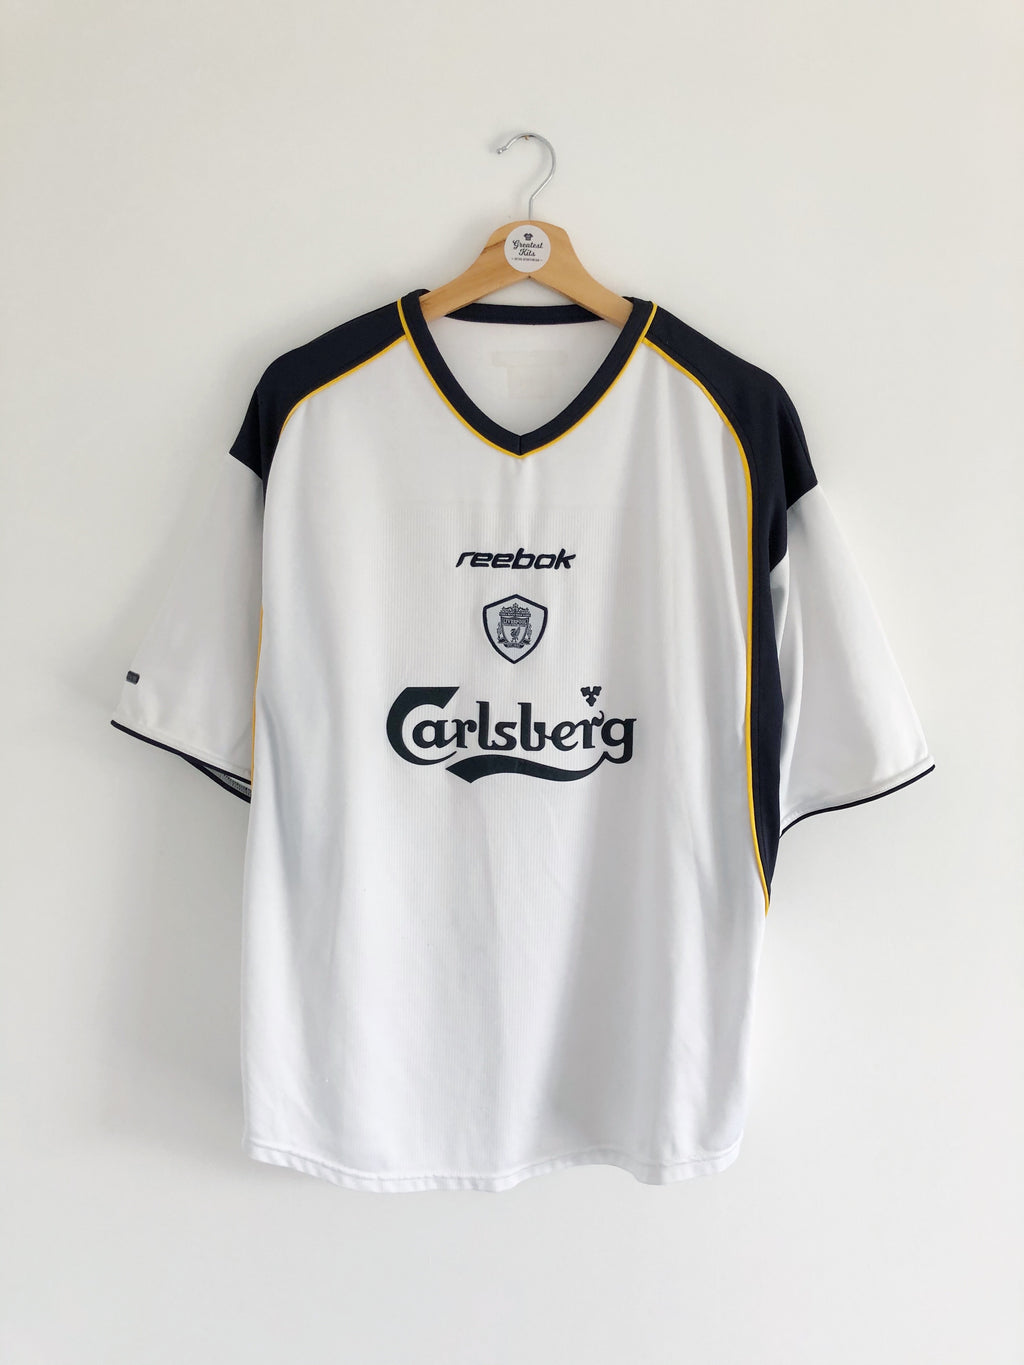 2001/03 Liverpool Away Shirt (L) 7.5/10